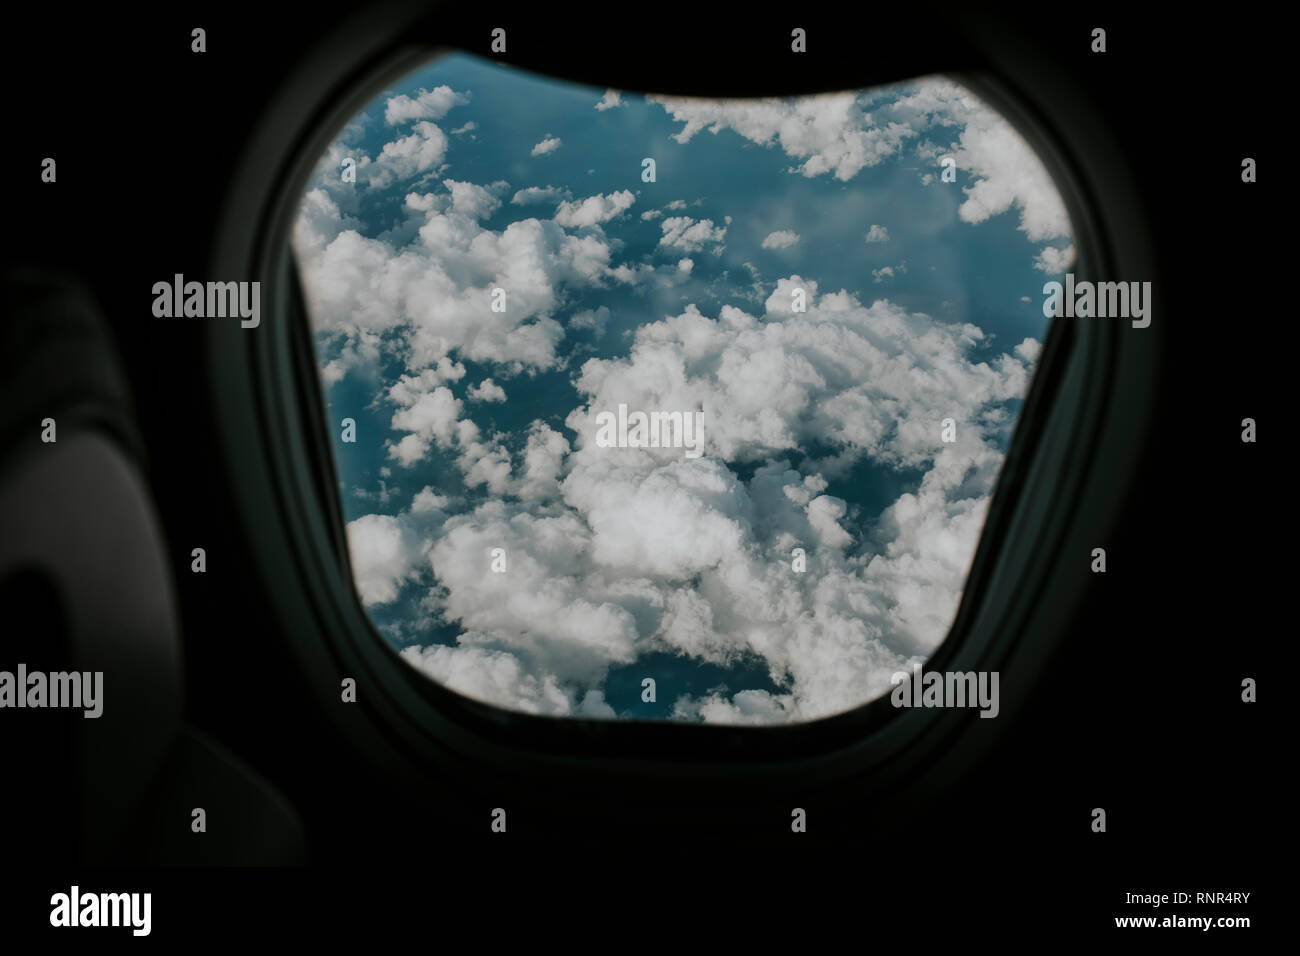 Beautiful white clouds and blue sea water viewed from a plane window during flight. Stock Photo